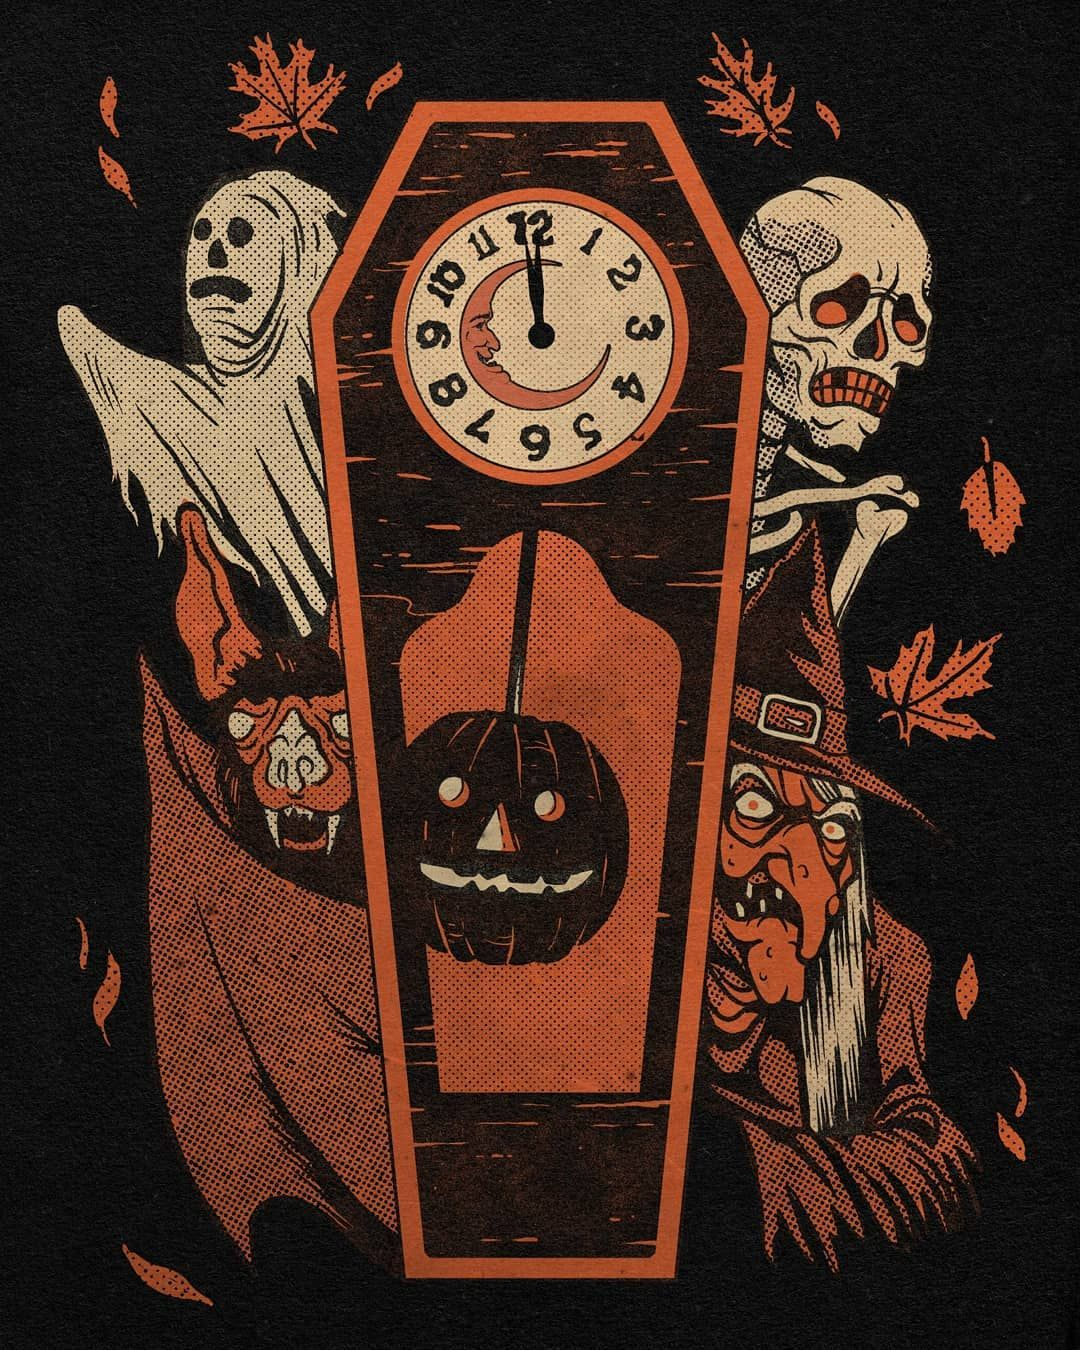 1 619 Likes 9 Comments Austinpardunart On Instagram The Time Is Here Happy Halloween Everyone Halloween Illustration Halloween Artwork Halloween Art